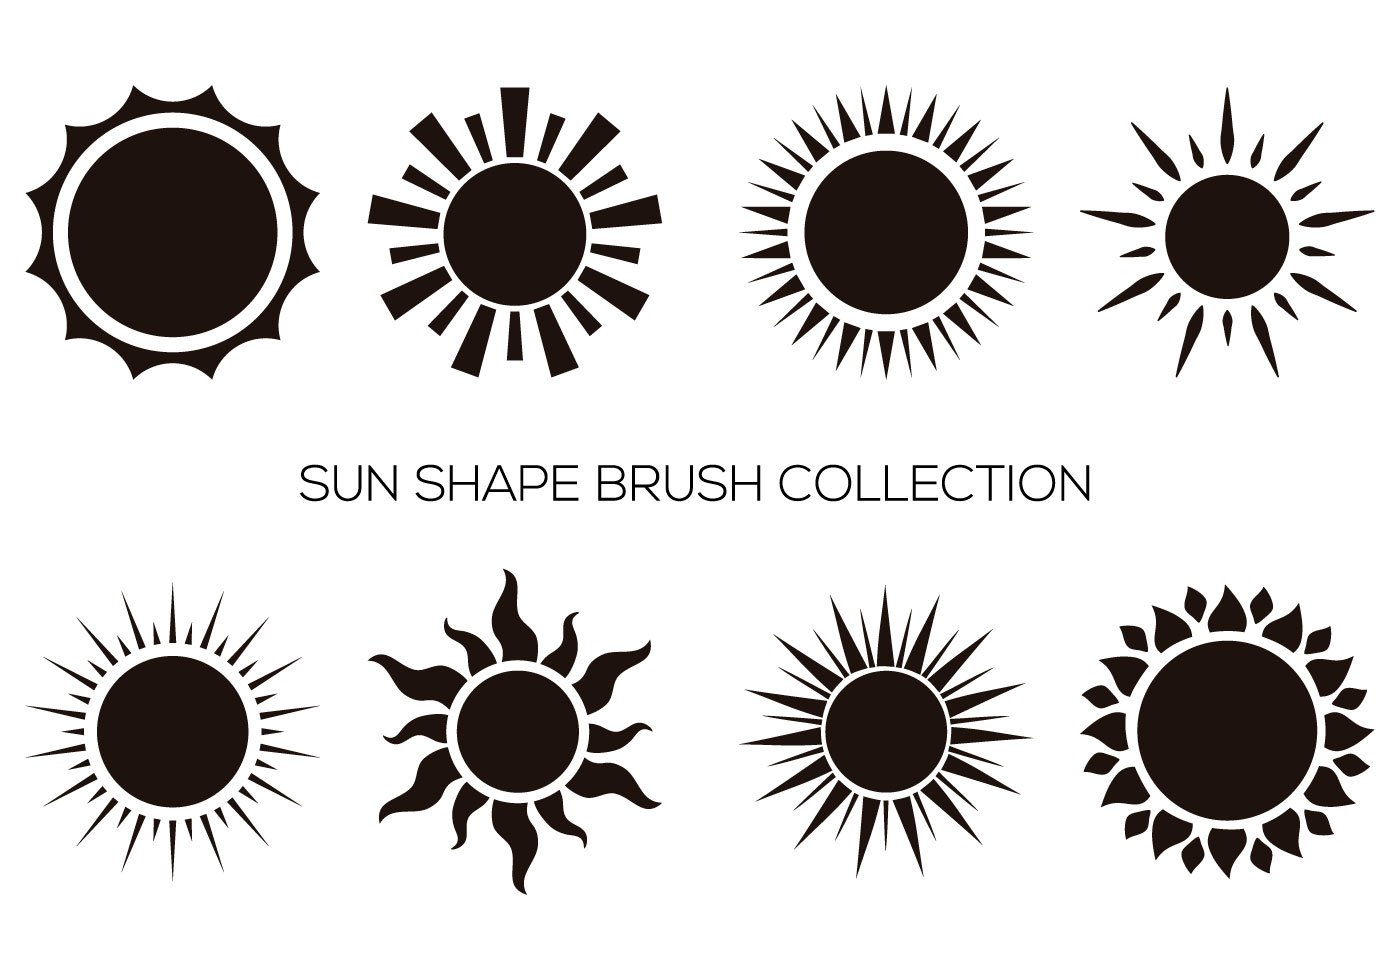 Star light brushes photoshop free download